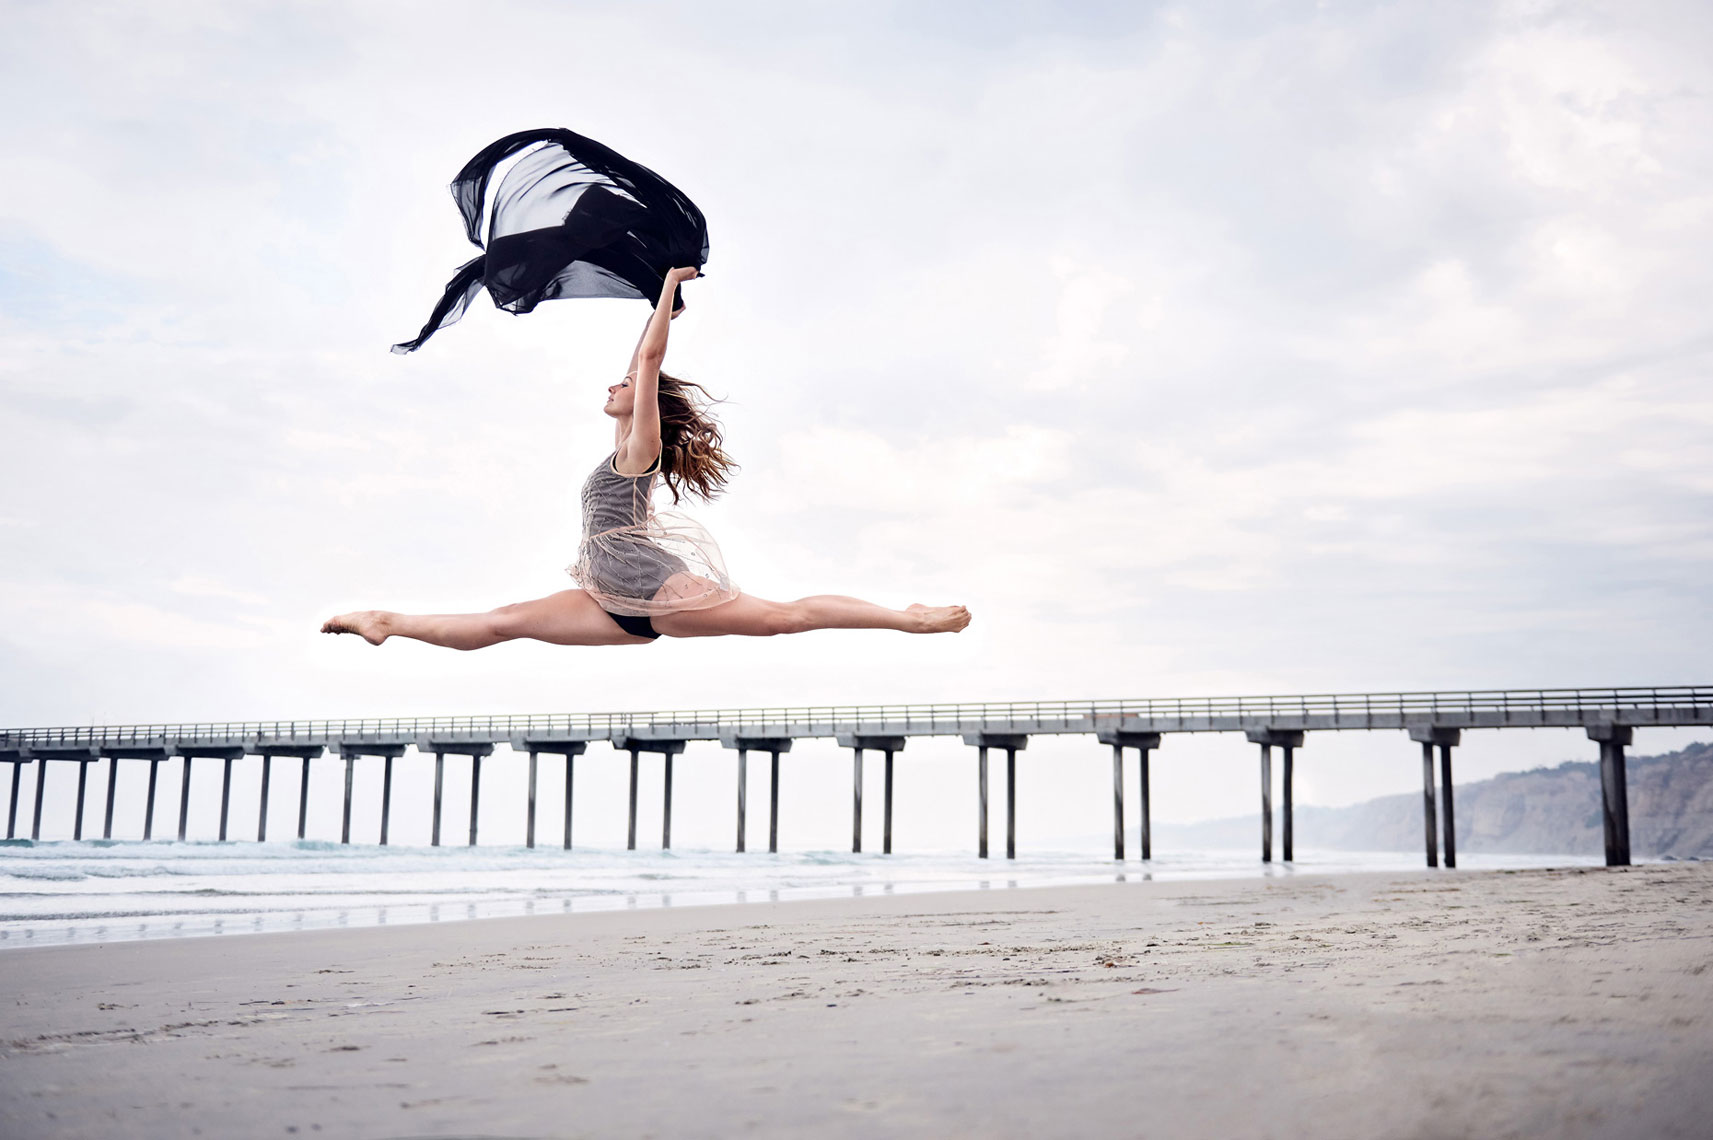 Ballerina jumping with Scripps pier in background.